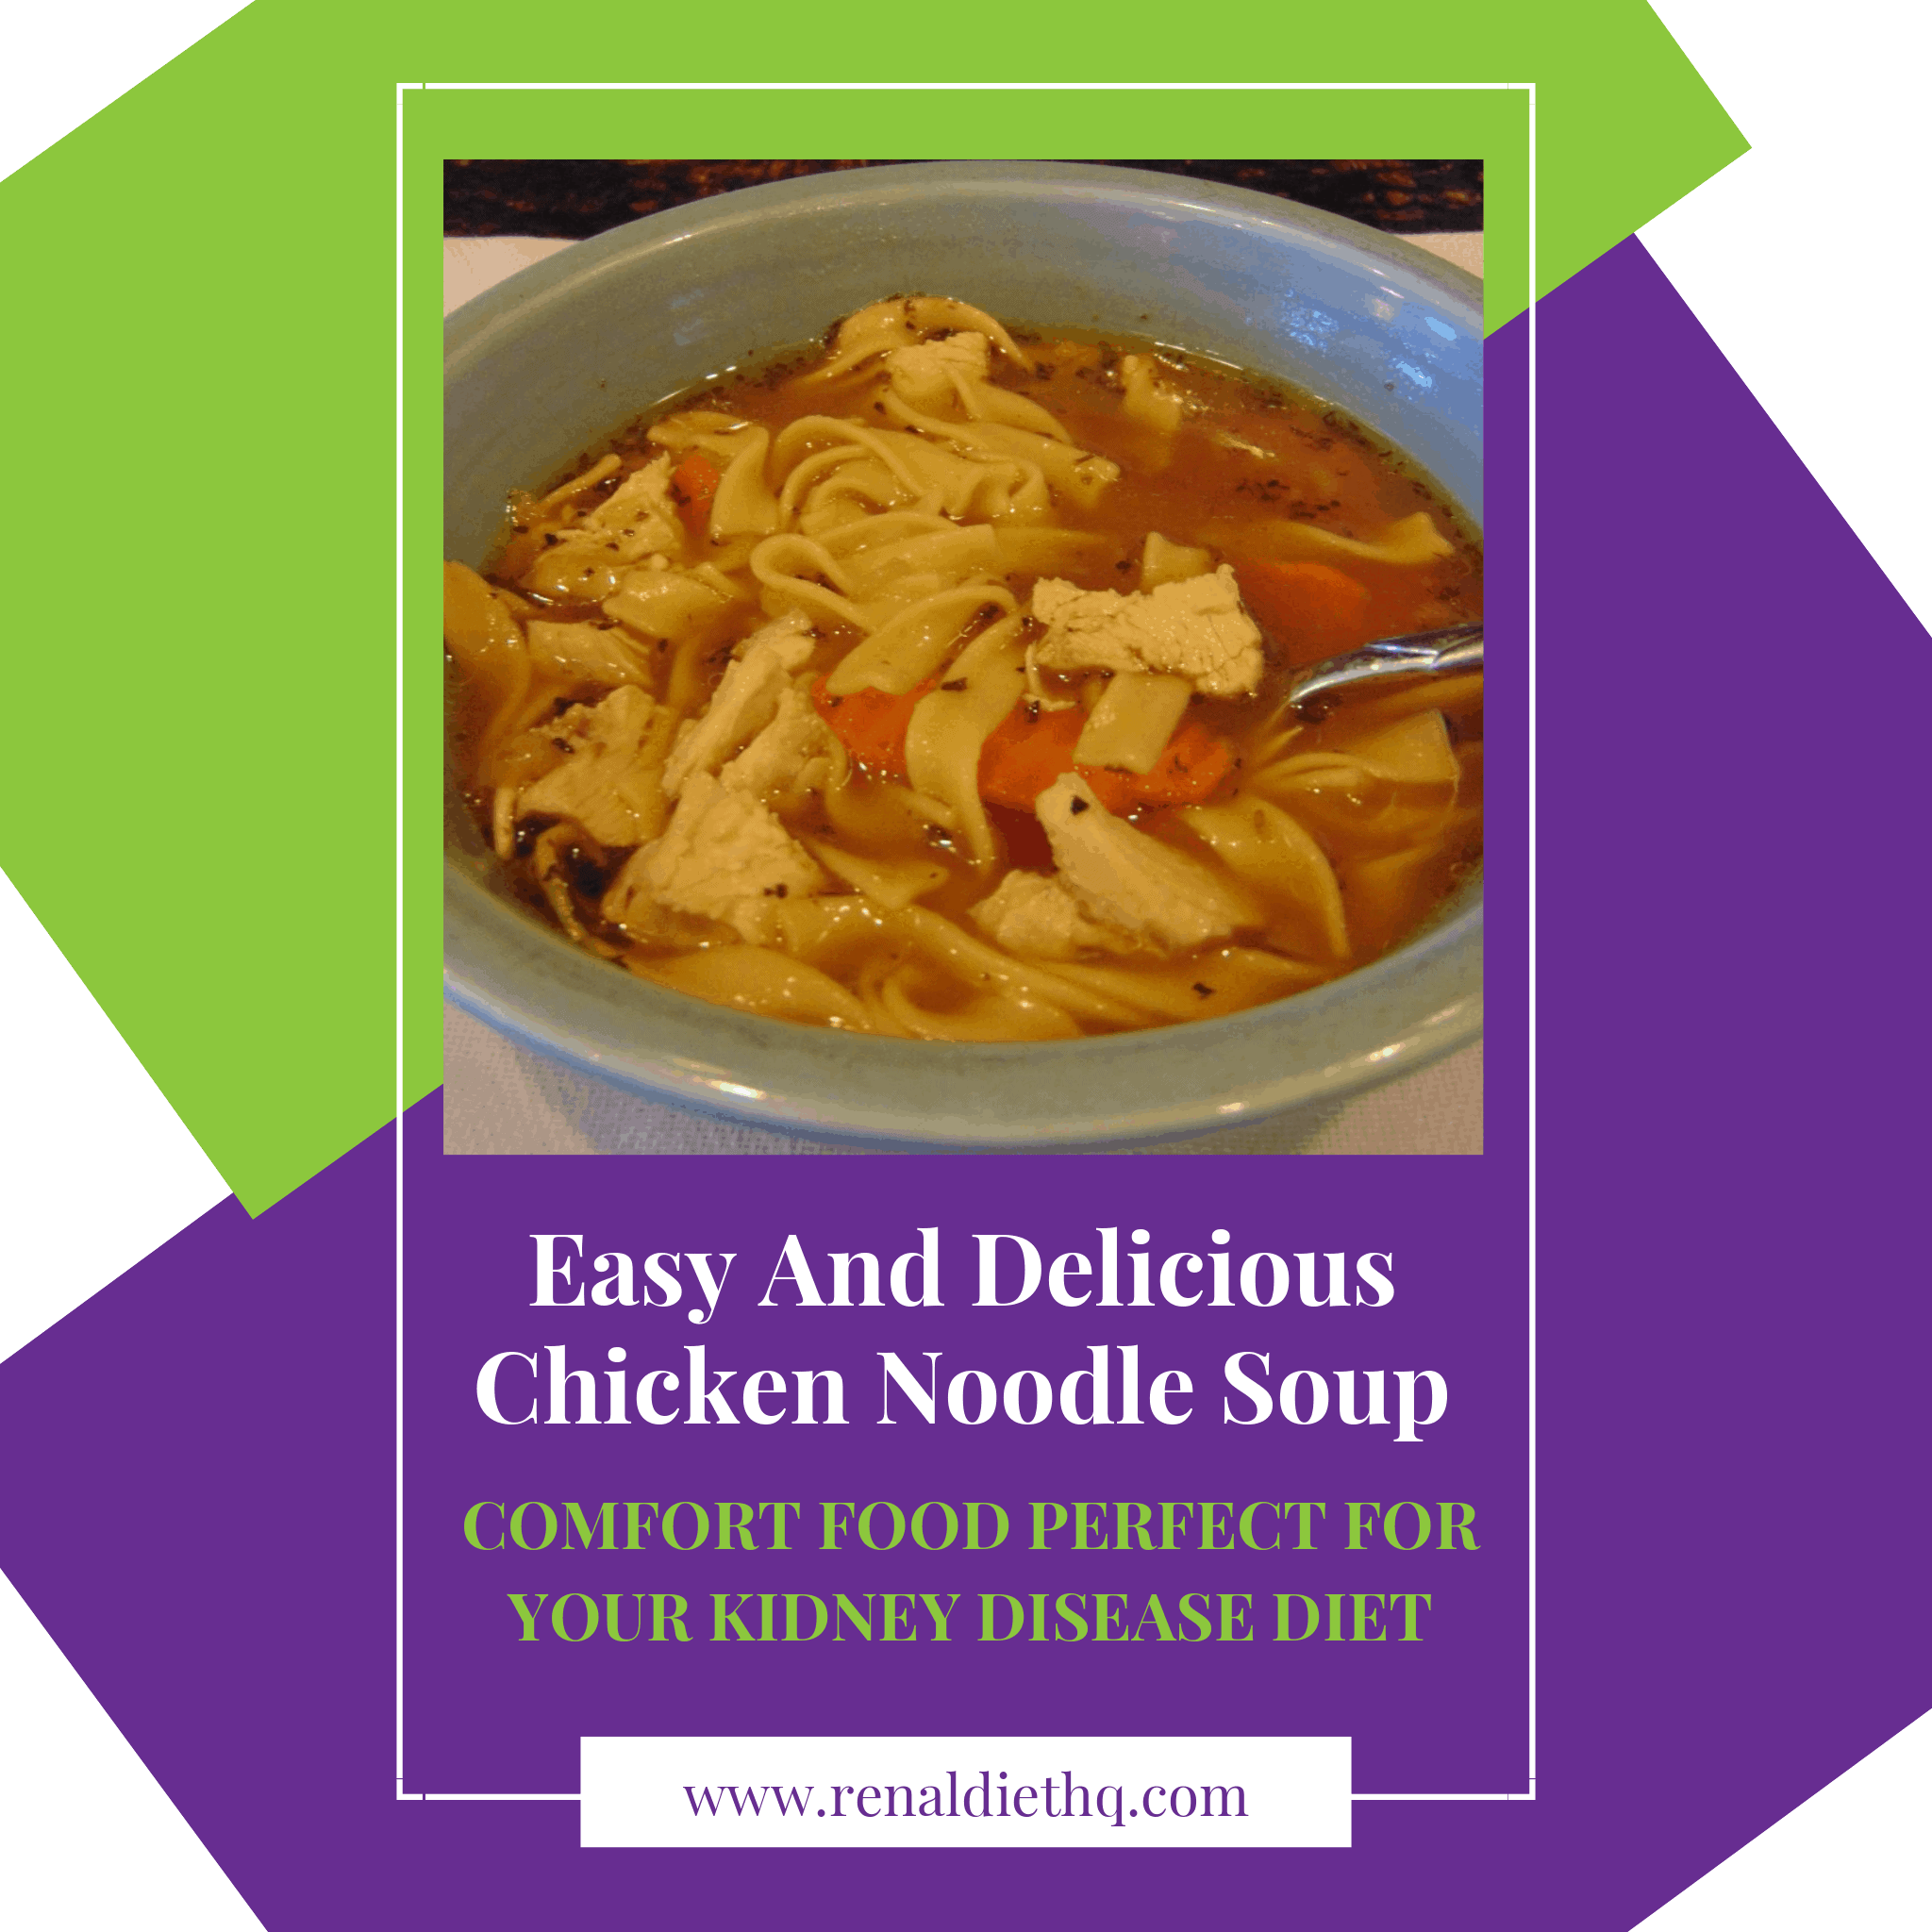 Renal Diet Recipes – Easy Chicken Noodle Soup – Low Sodium And Kidney Diet Friendly